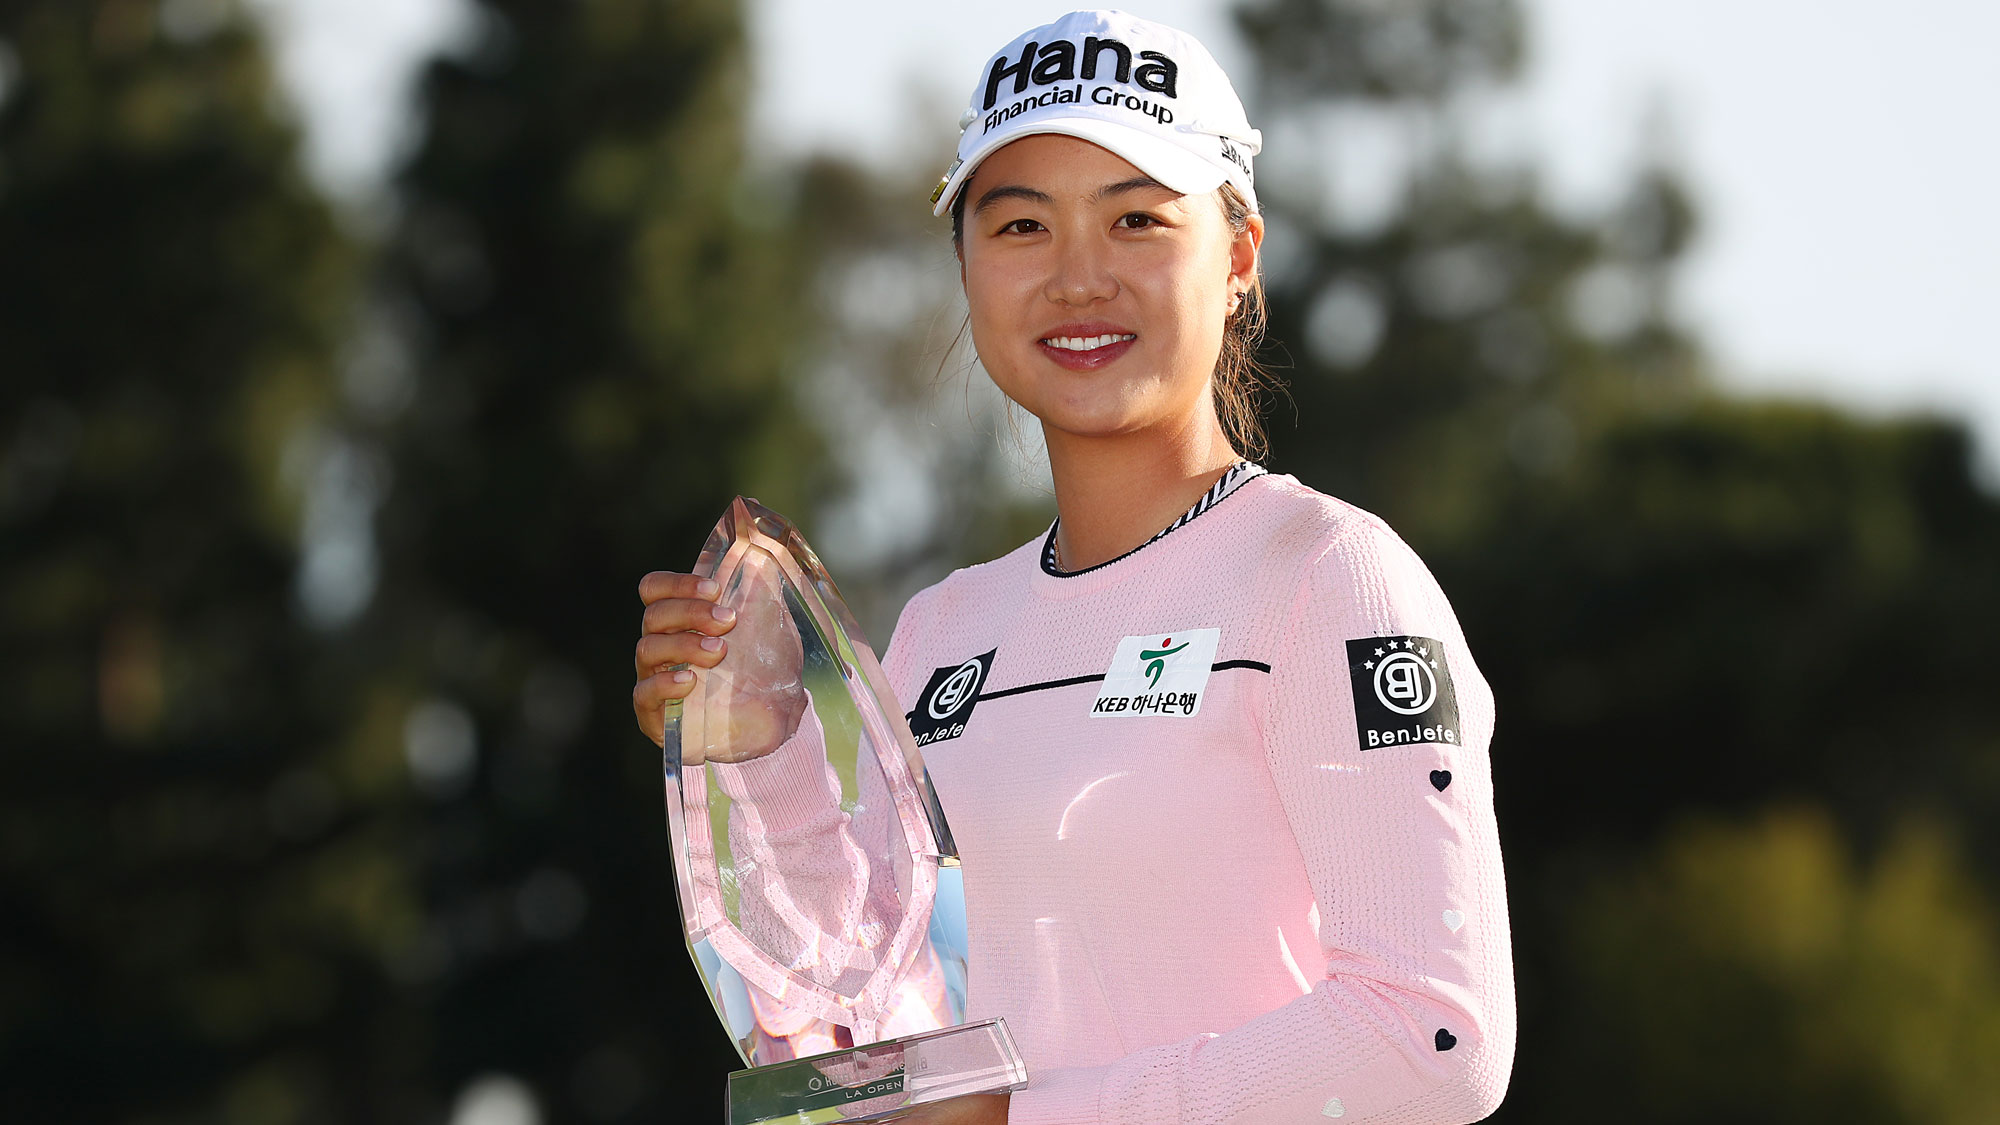 Minjee Lee has her #BagsPacked for the 2020 Diamond Resorts Tournament of Champions after her victory at the 2019 HUGEL-AIR PREMIA LA Open